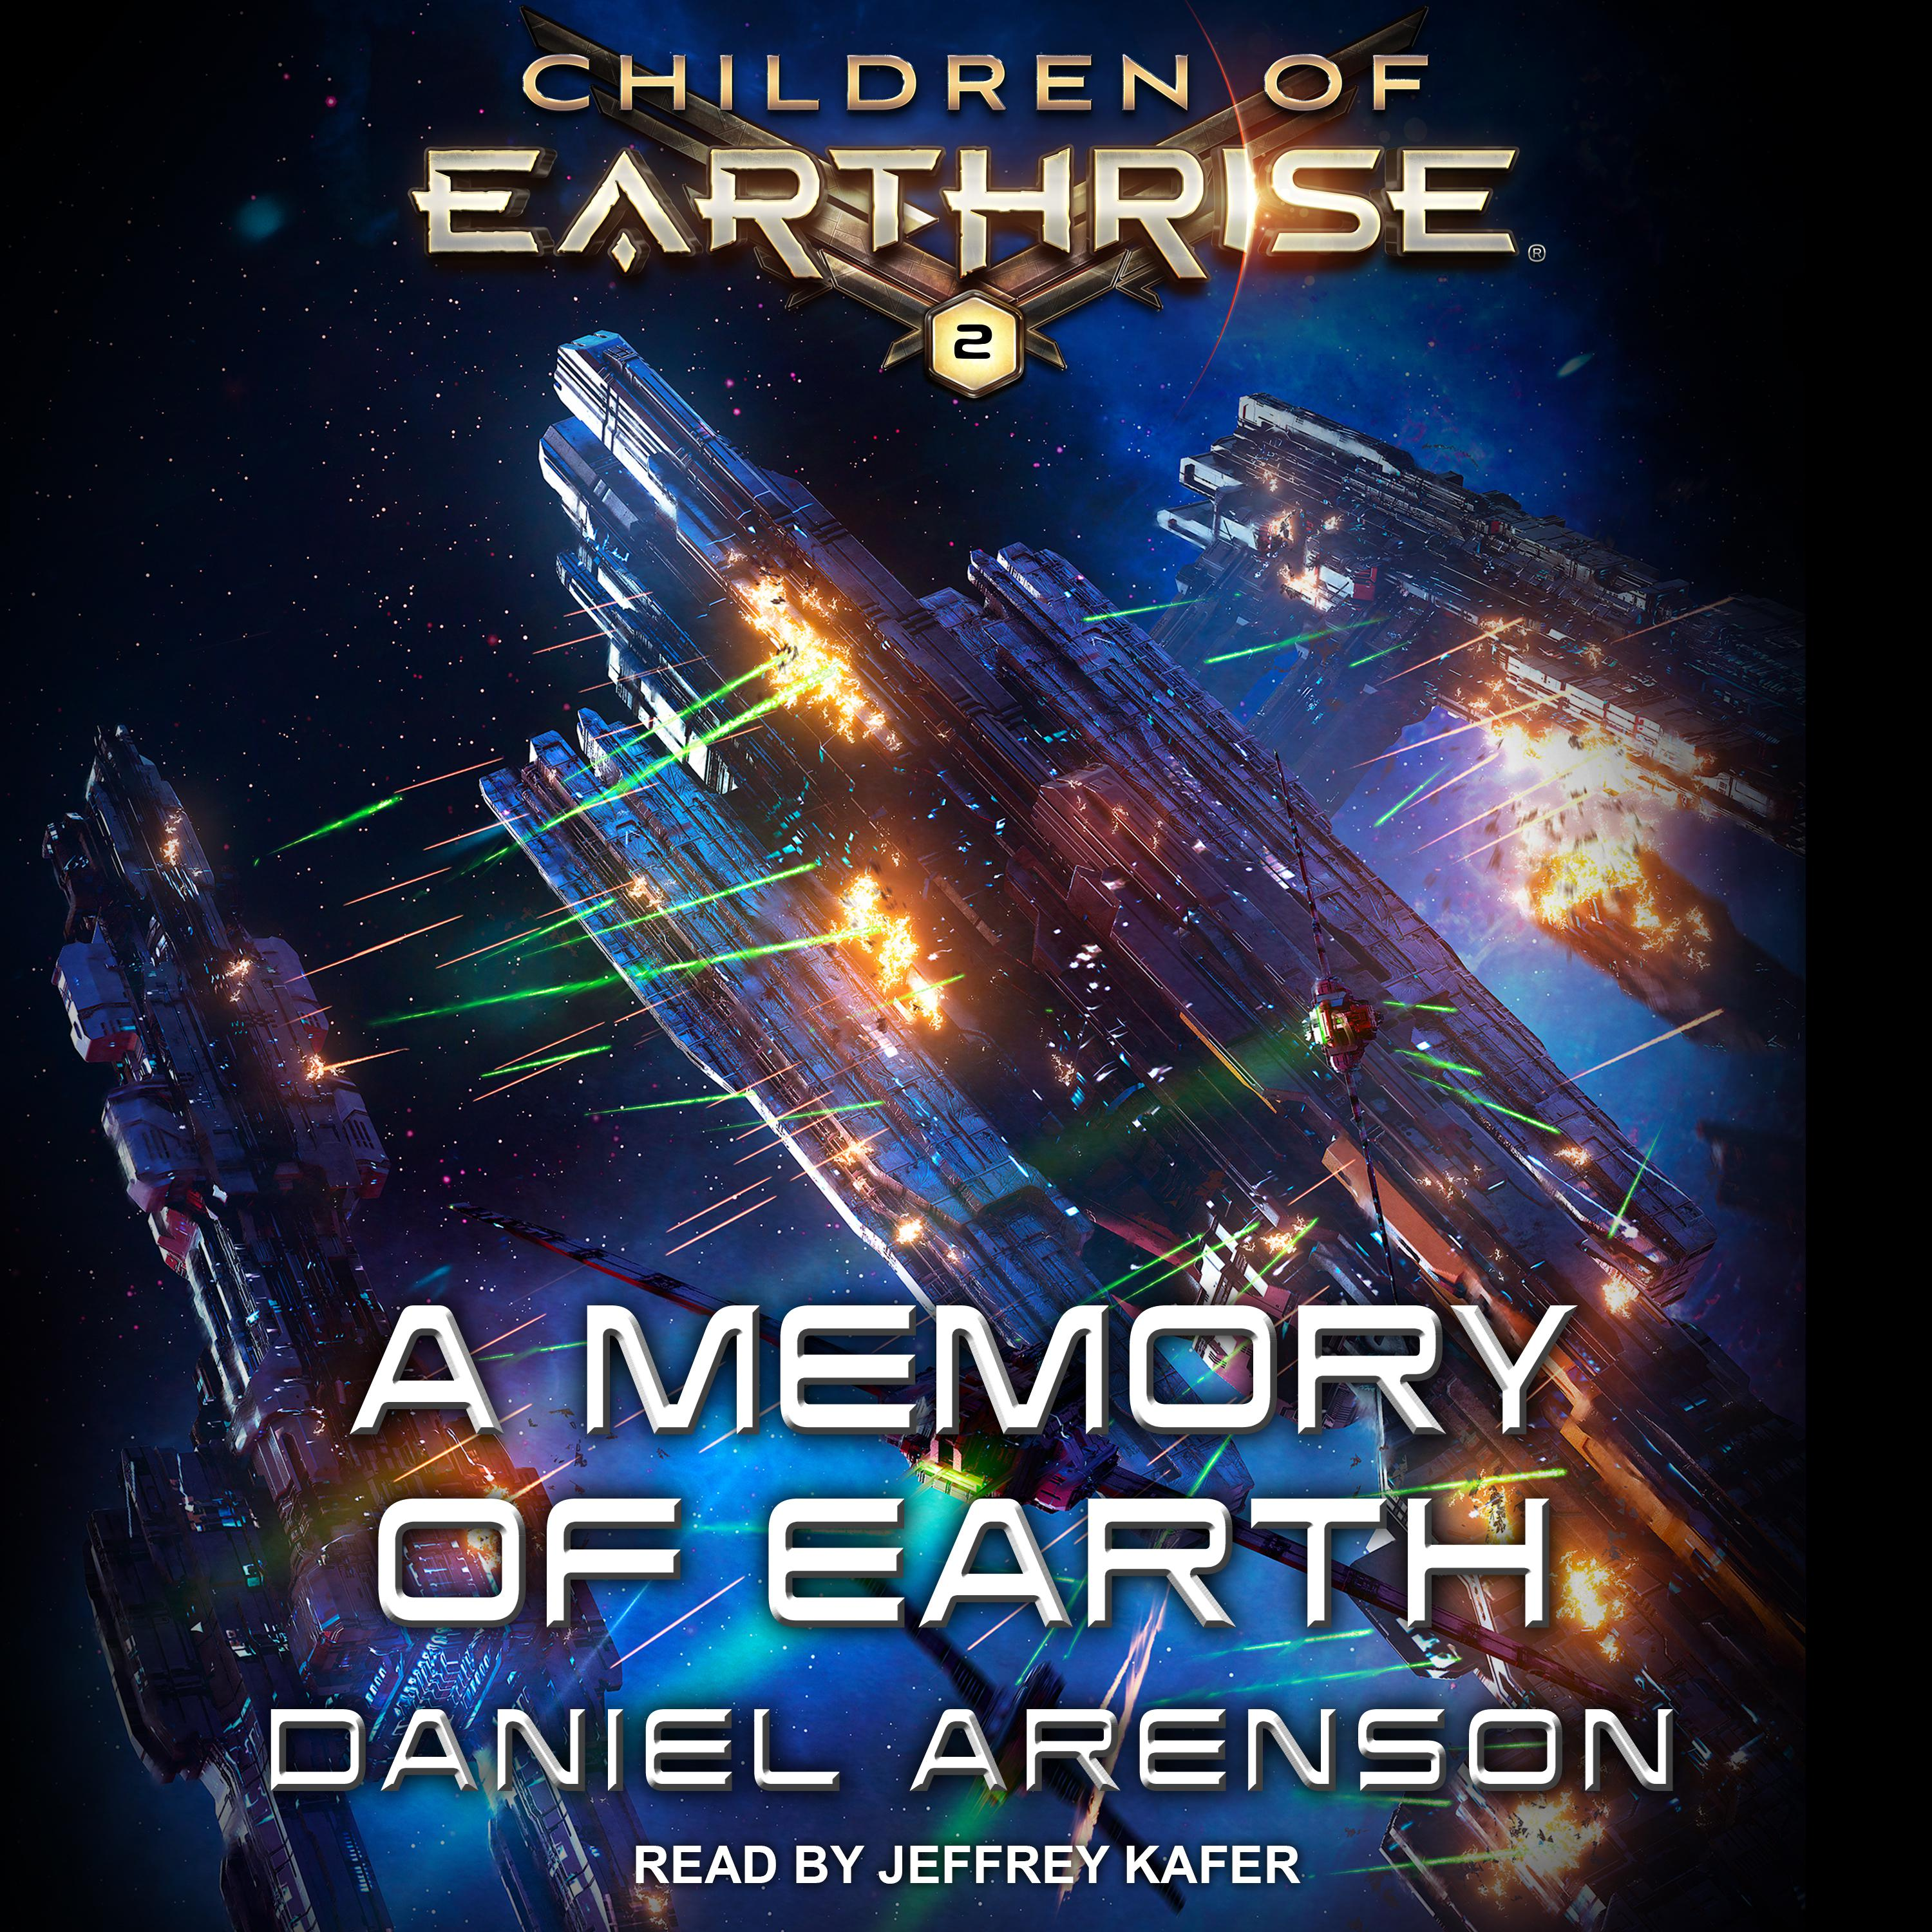 Printable A Memory of Earth Audiobook Cover Art